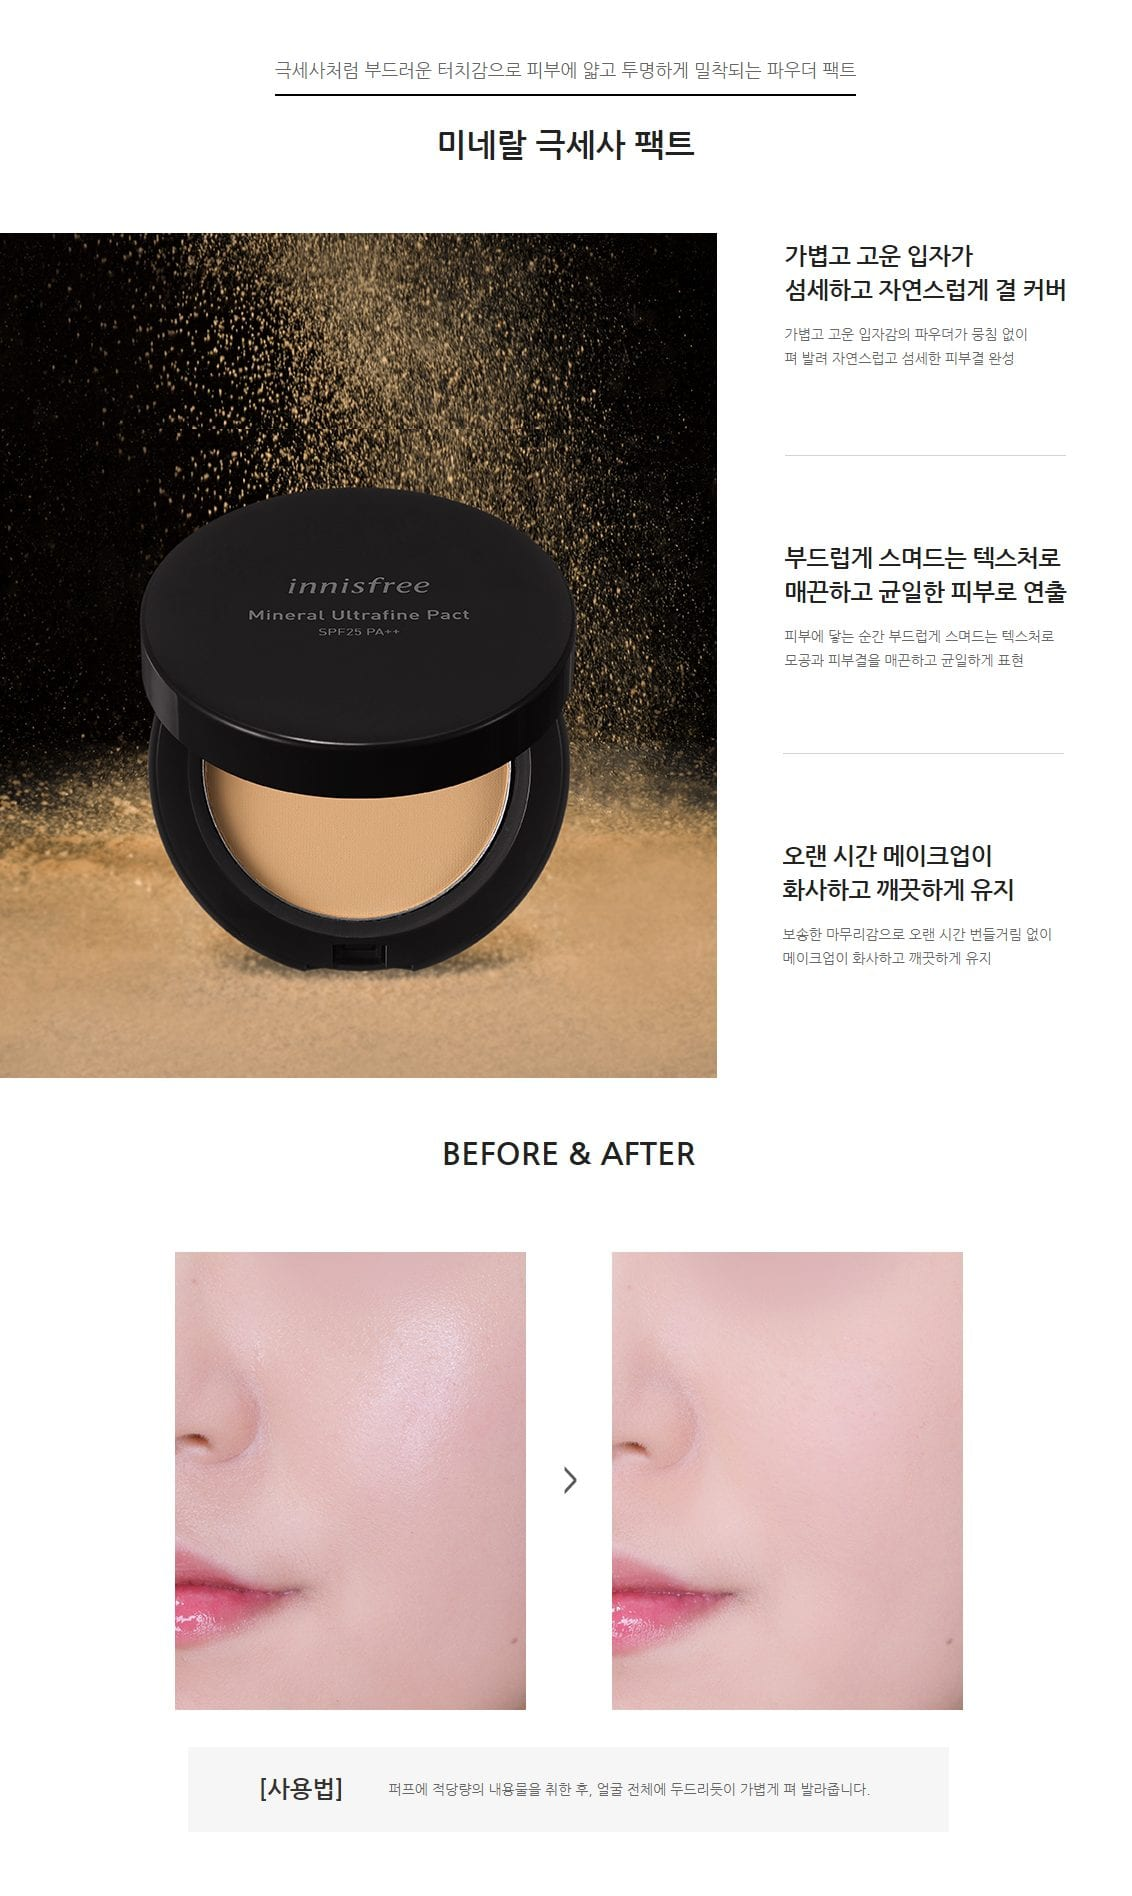 Phủ Innisfree Mineral Ultrafine Pact 3